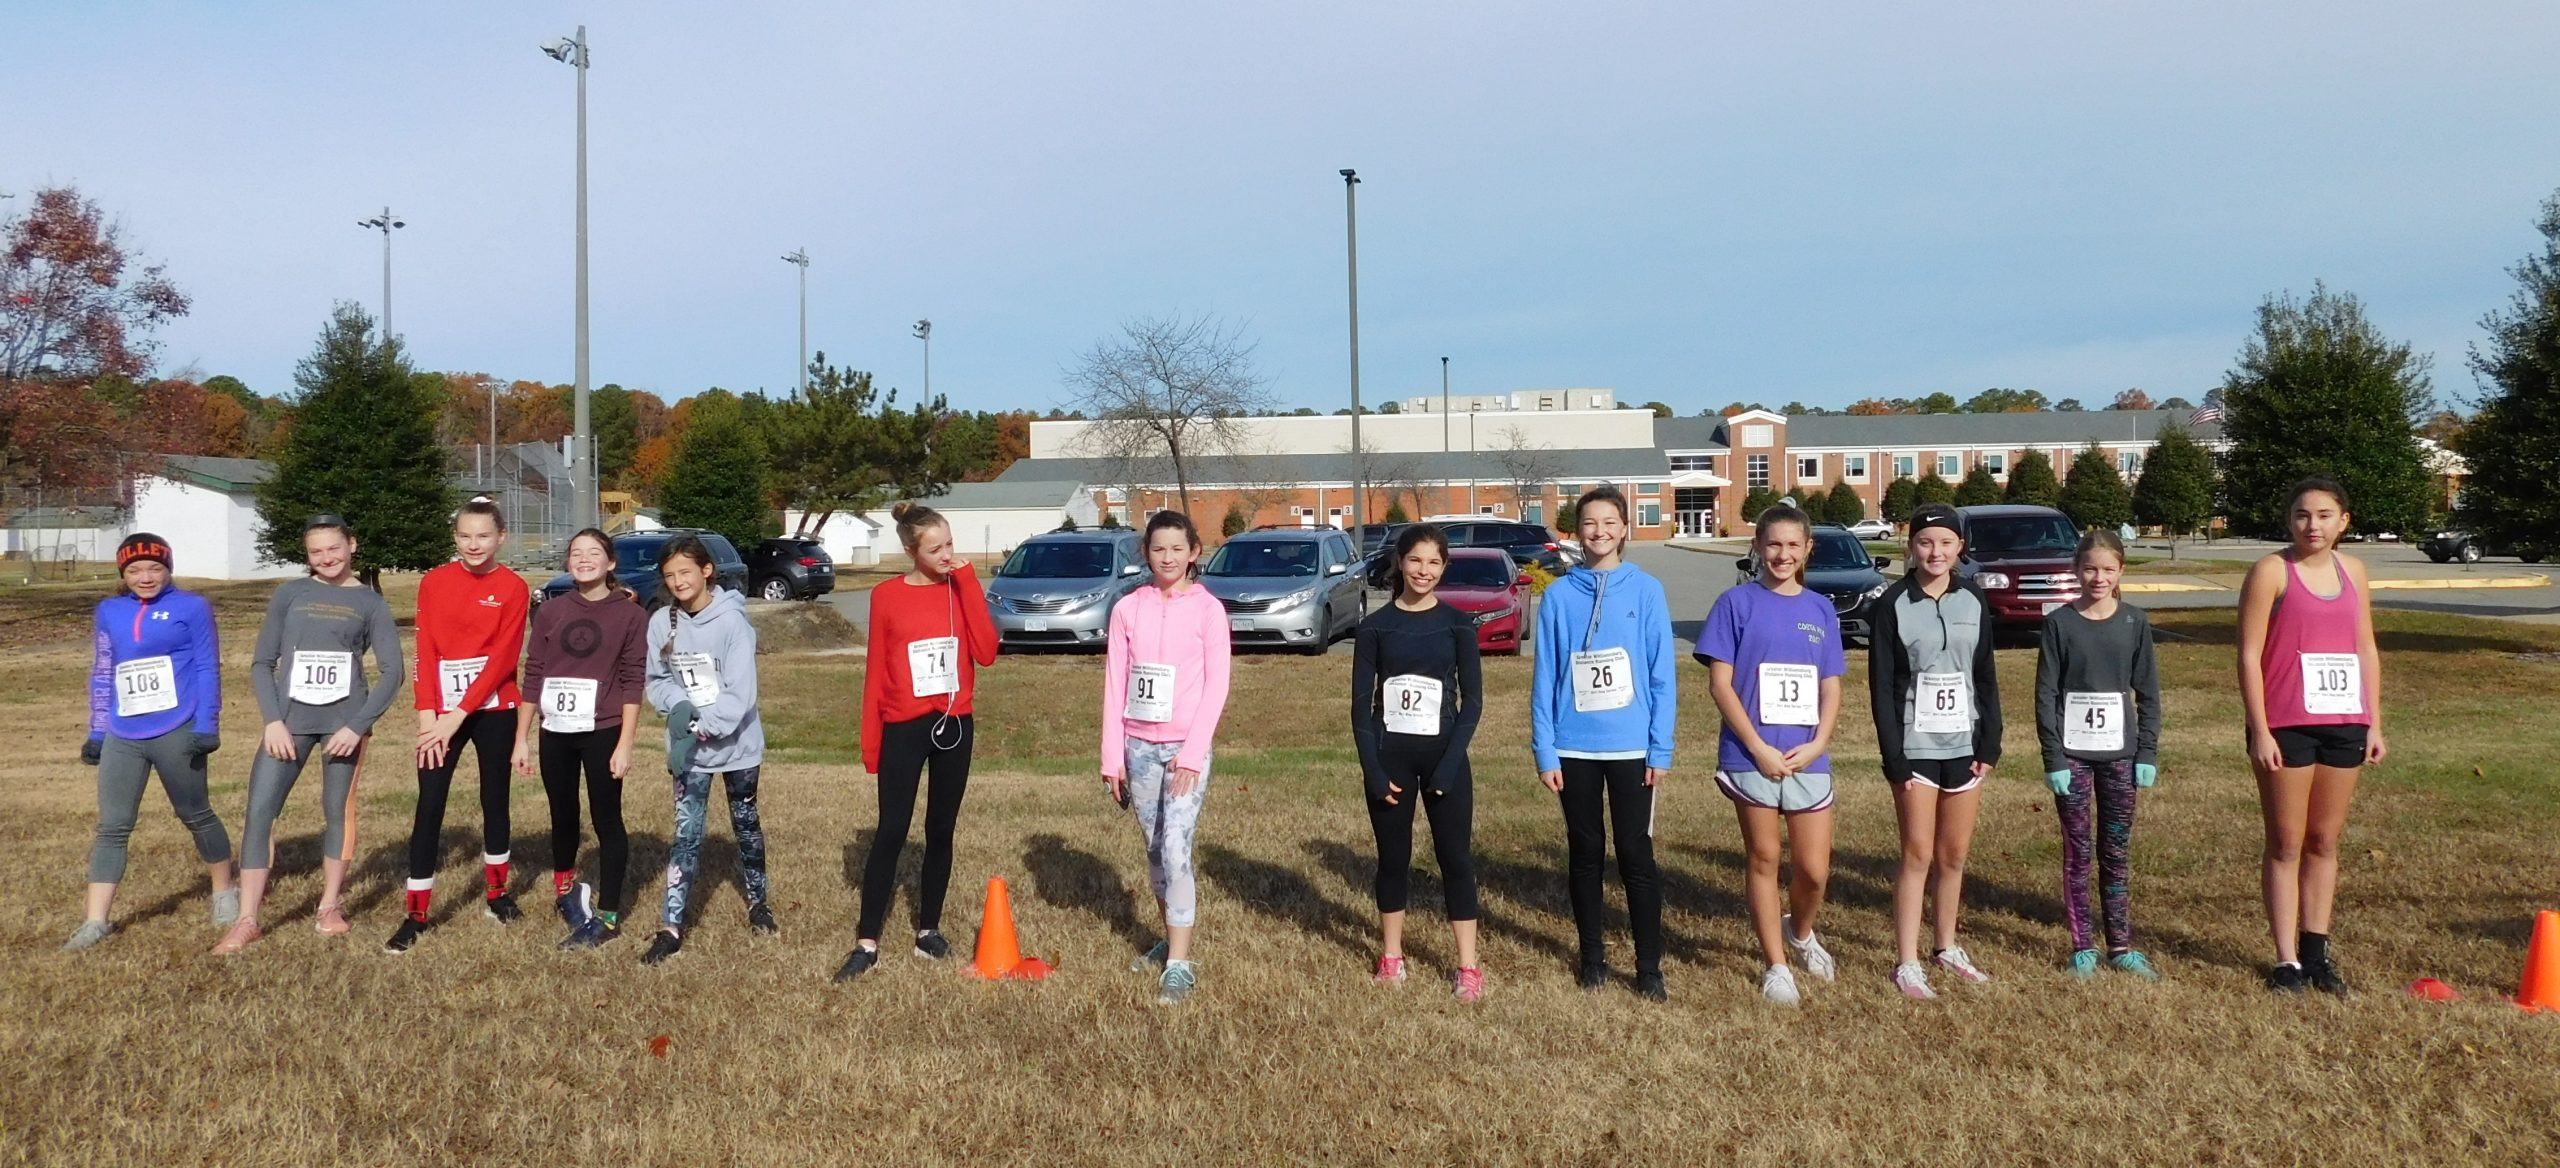 7th and 8th grade girls at the starting line of their 1.5 mile event